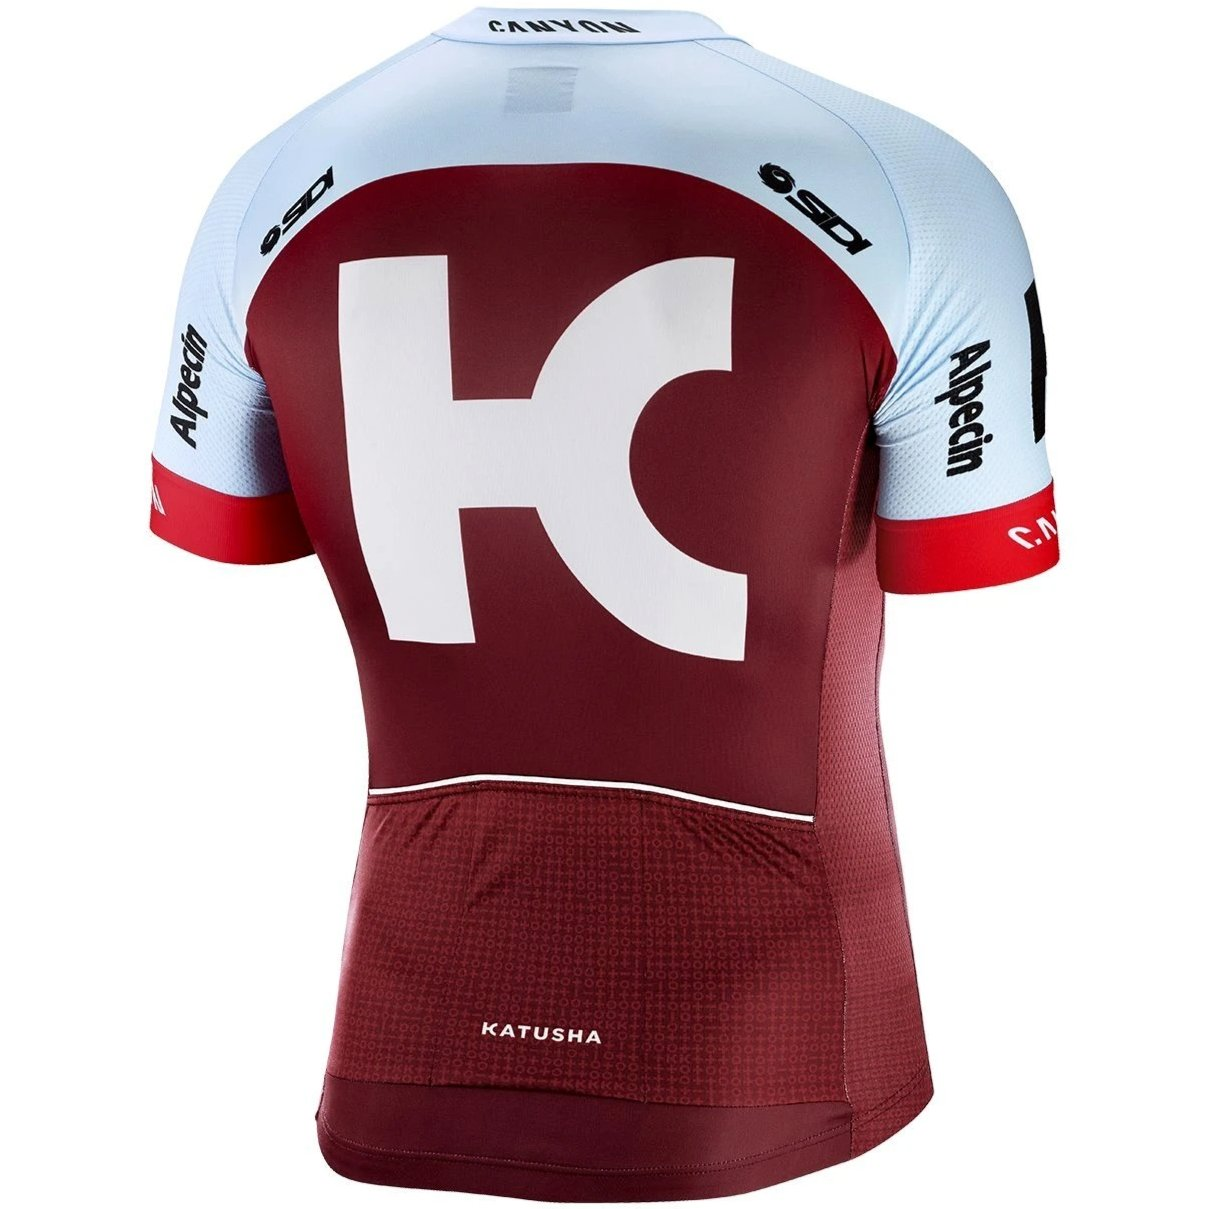 6a2ce30a8 Katusha REPLICA Short Sleeve Cycling Jersey 2018 - Sangre Blue ...